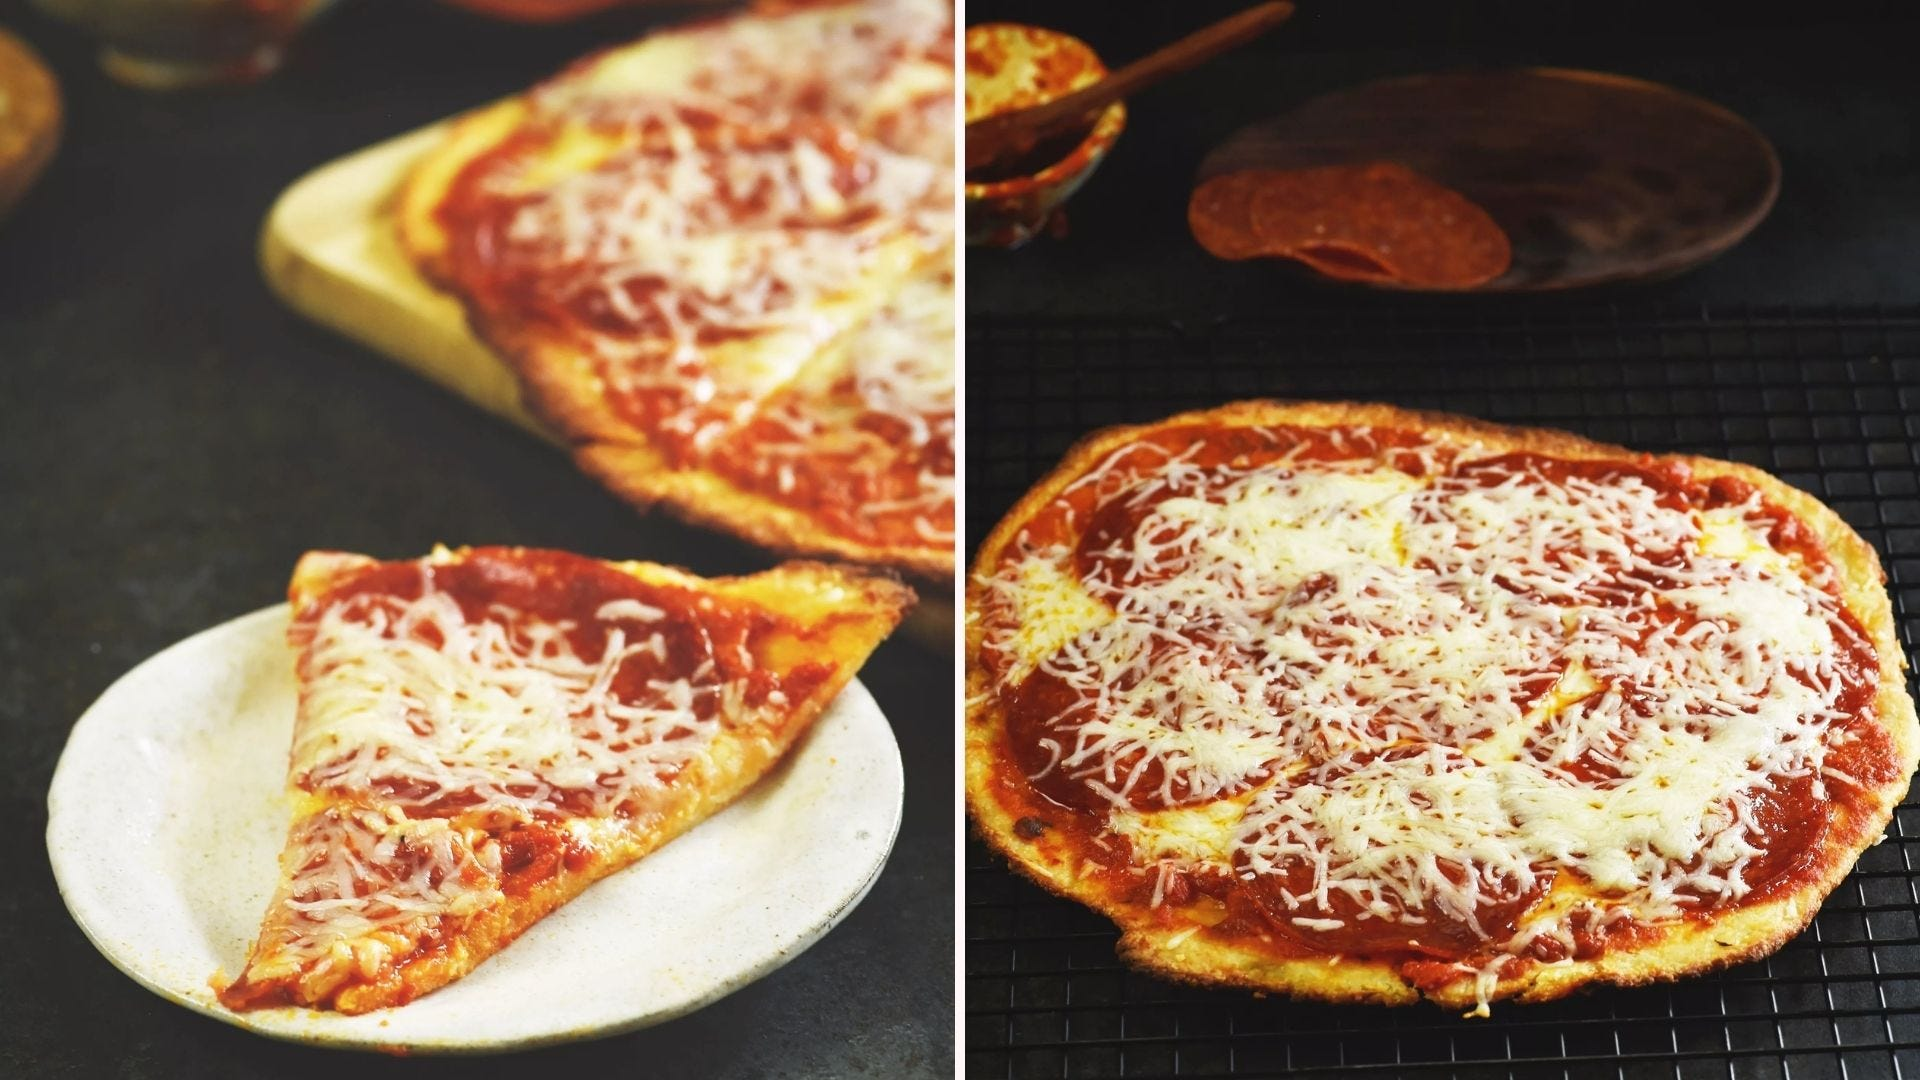 Two images of keto-friendly low-carb pizza. The left image is of an individual slice and the right image is of a whole pizza.